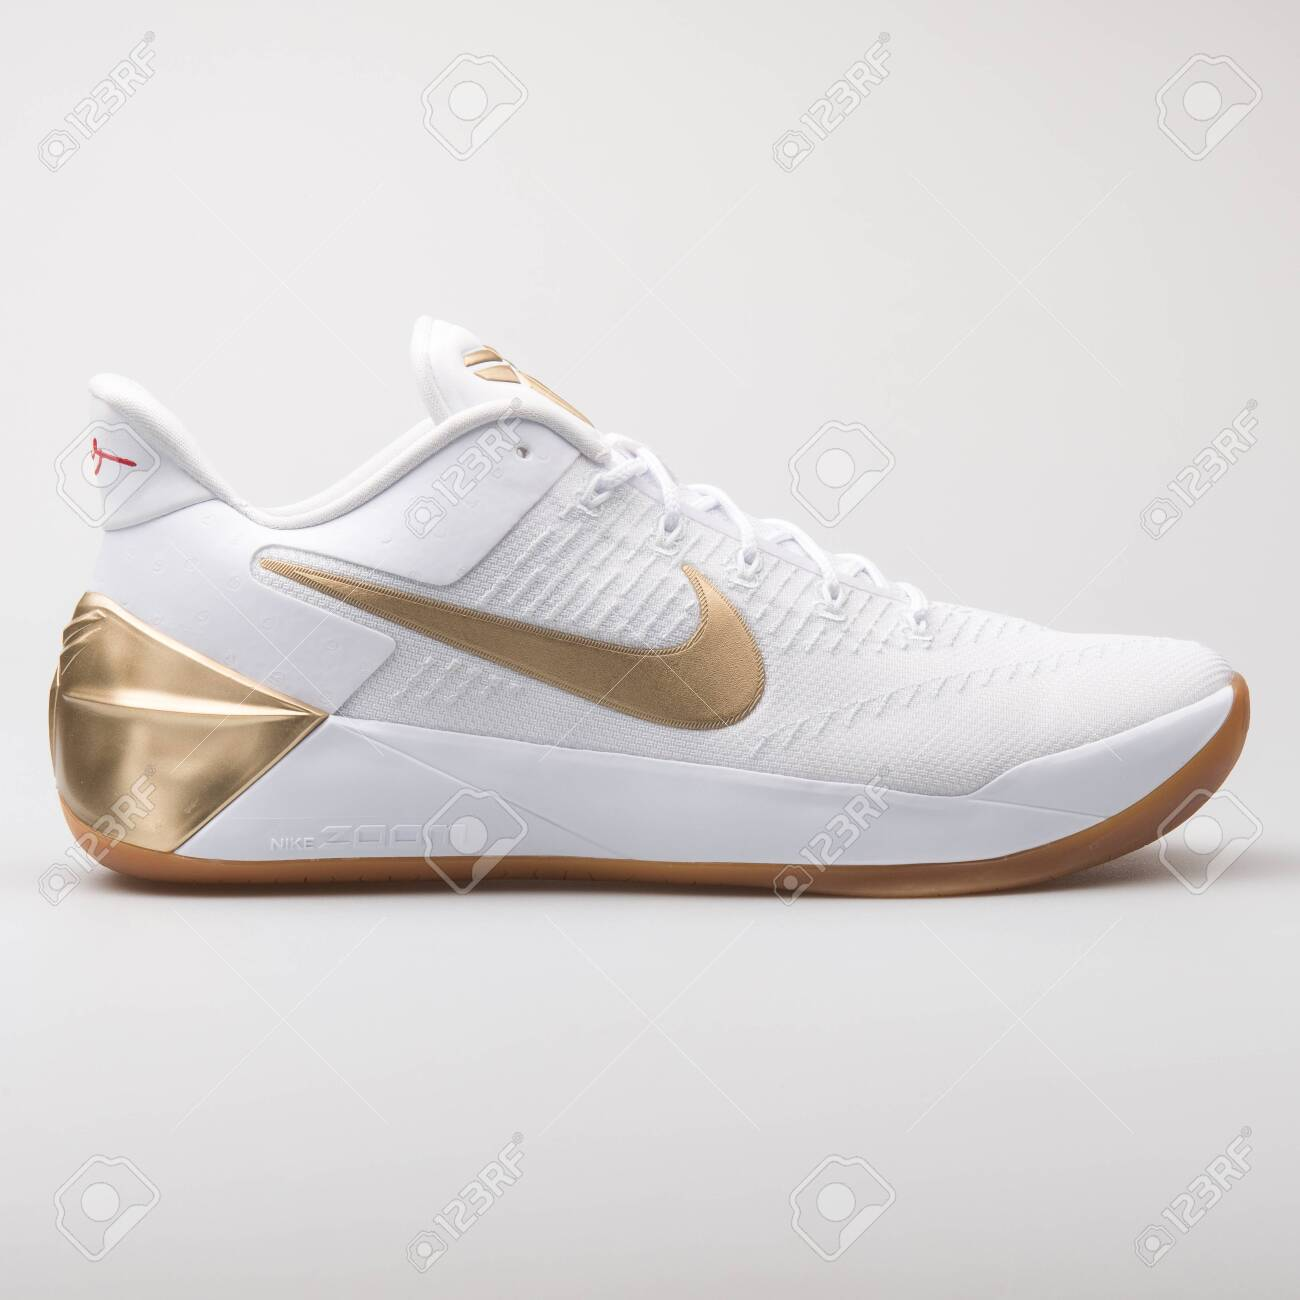 info for 30b8b 3cb1c VIENNA, AUSTRIA - AUGUST 7, 2017: Nike Kobe A.D. white and gold..